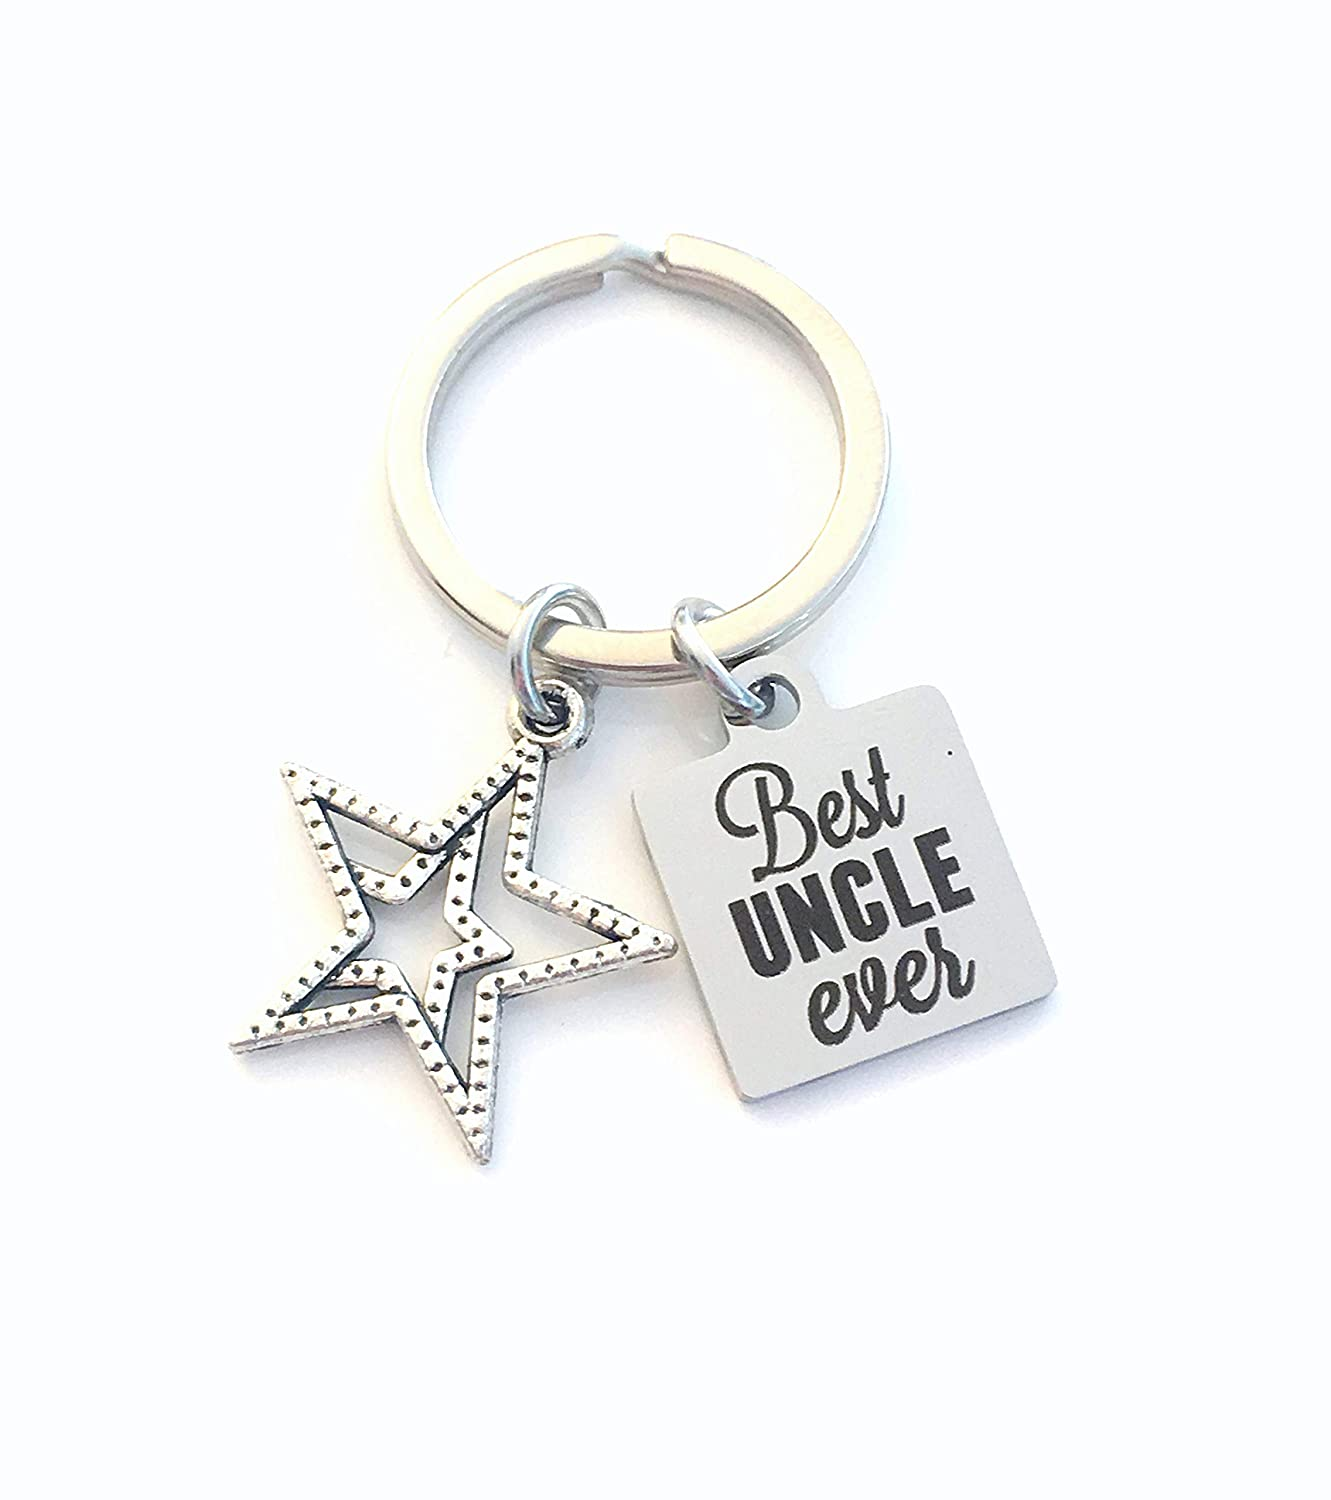 Best Uncle Ever Keychain, Gift for Uncle Key Chain